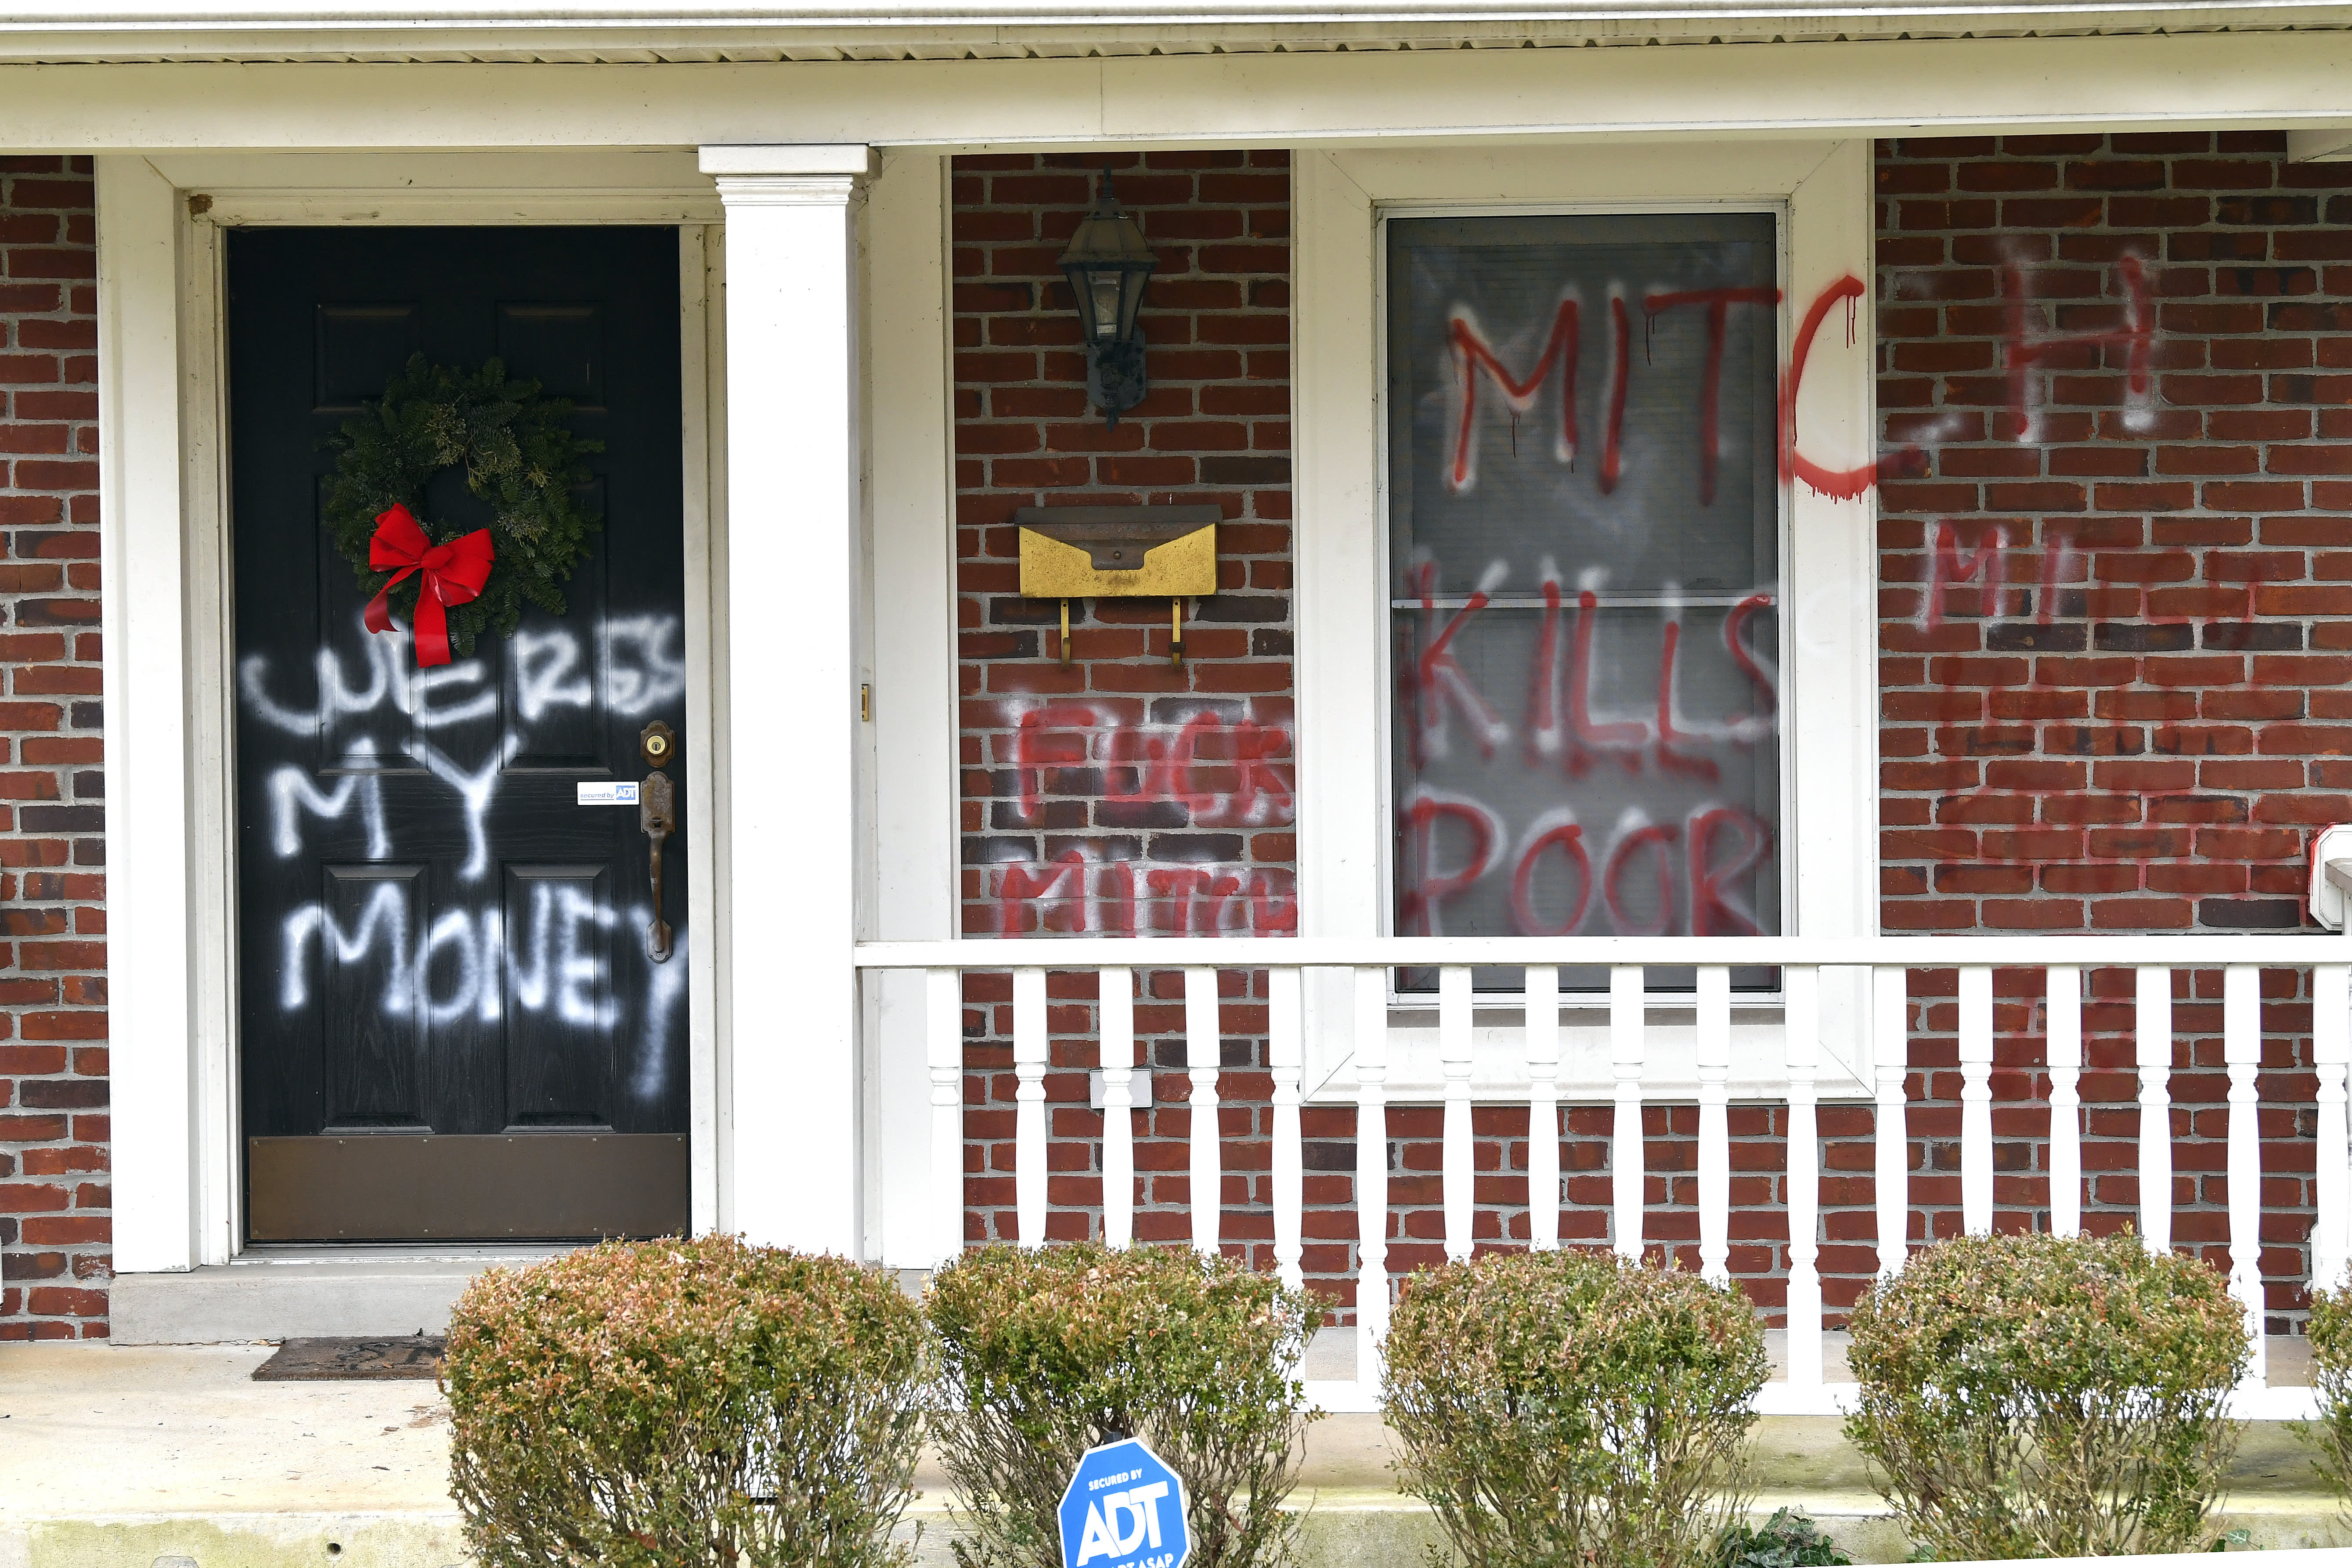 McConnell and Pelosi's homes vandalized after Congress fails to pass $2000 stimulus checks – CNBC